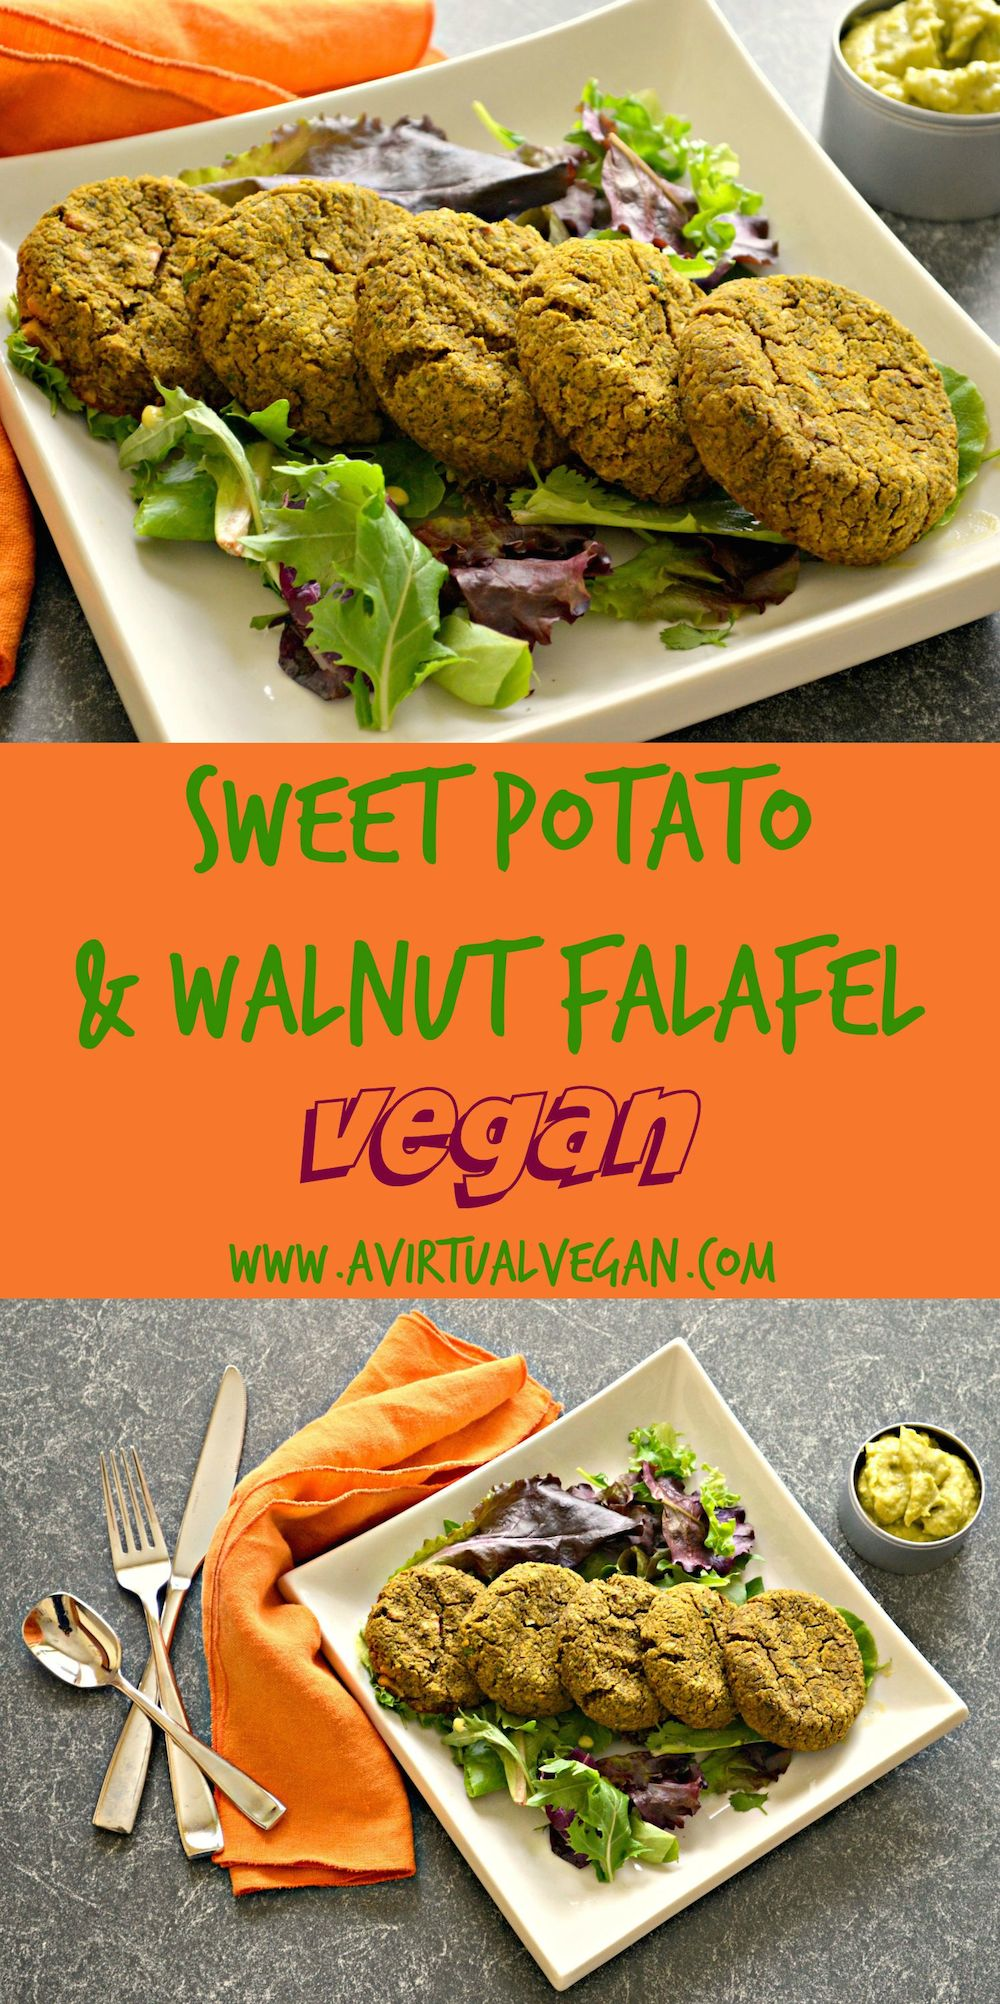 Delicious and healthy Sweet Potato Falafel with Walnuts. Baked not fried, perfectly moist and full of flavour. #falafel #vegan